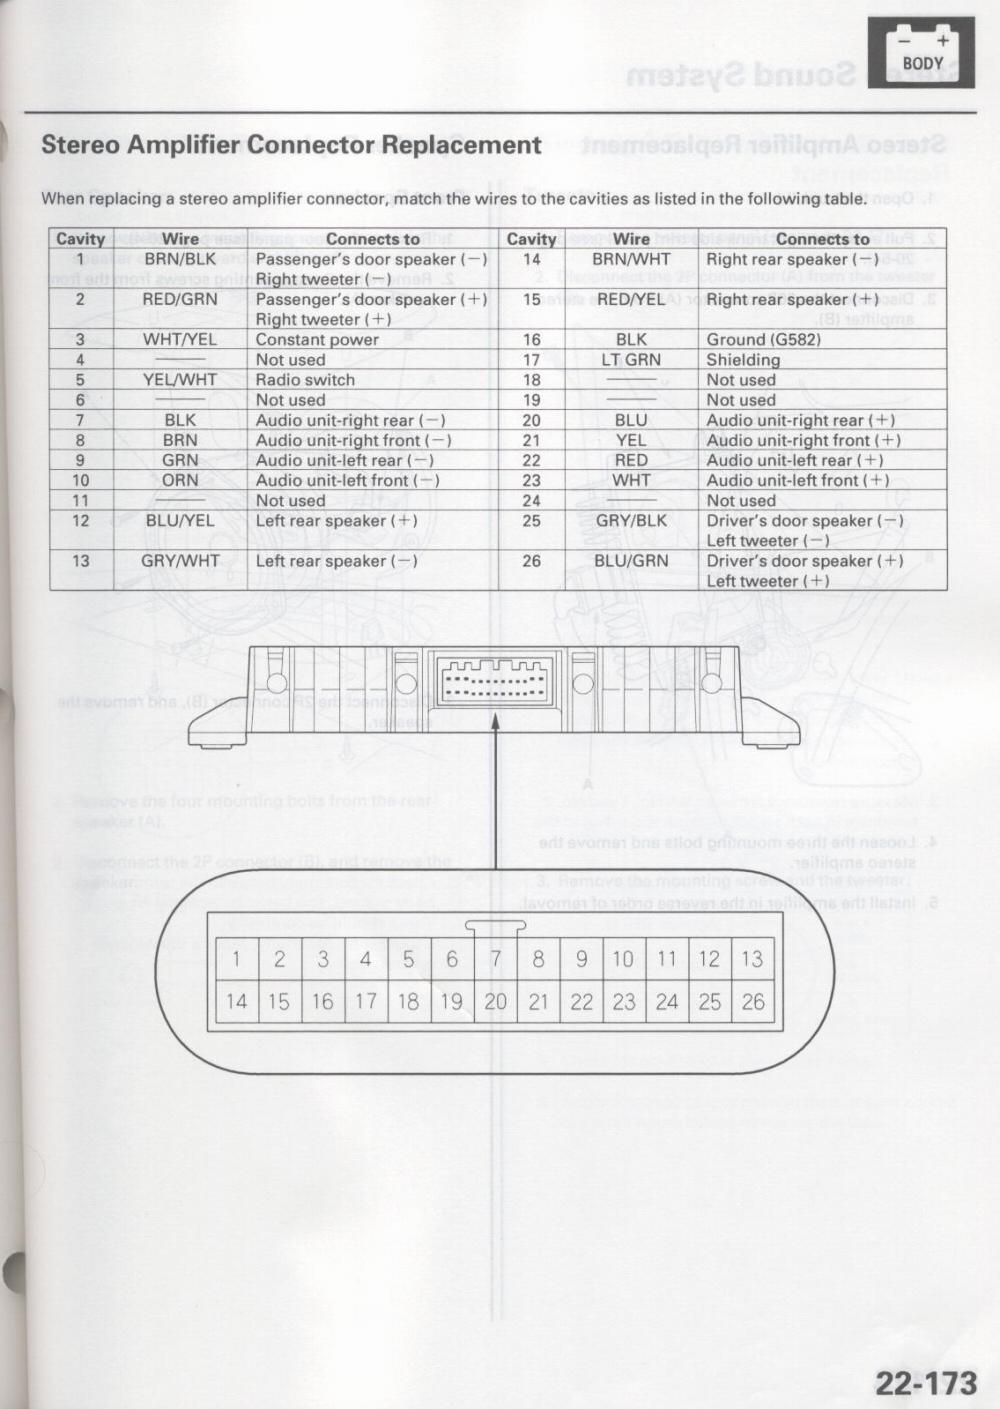 Acura 2002 TL car stereo amplifier wiring diagram harness car radio stereo audio wiring diagram autoradio connector wire 2002 lancer speaker wiring diagram at gsmx.co